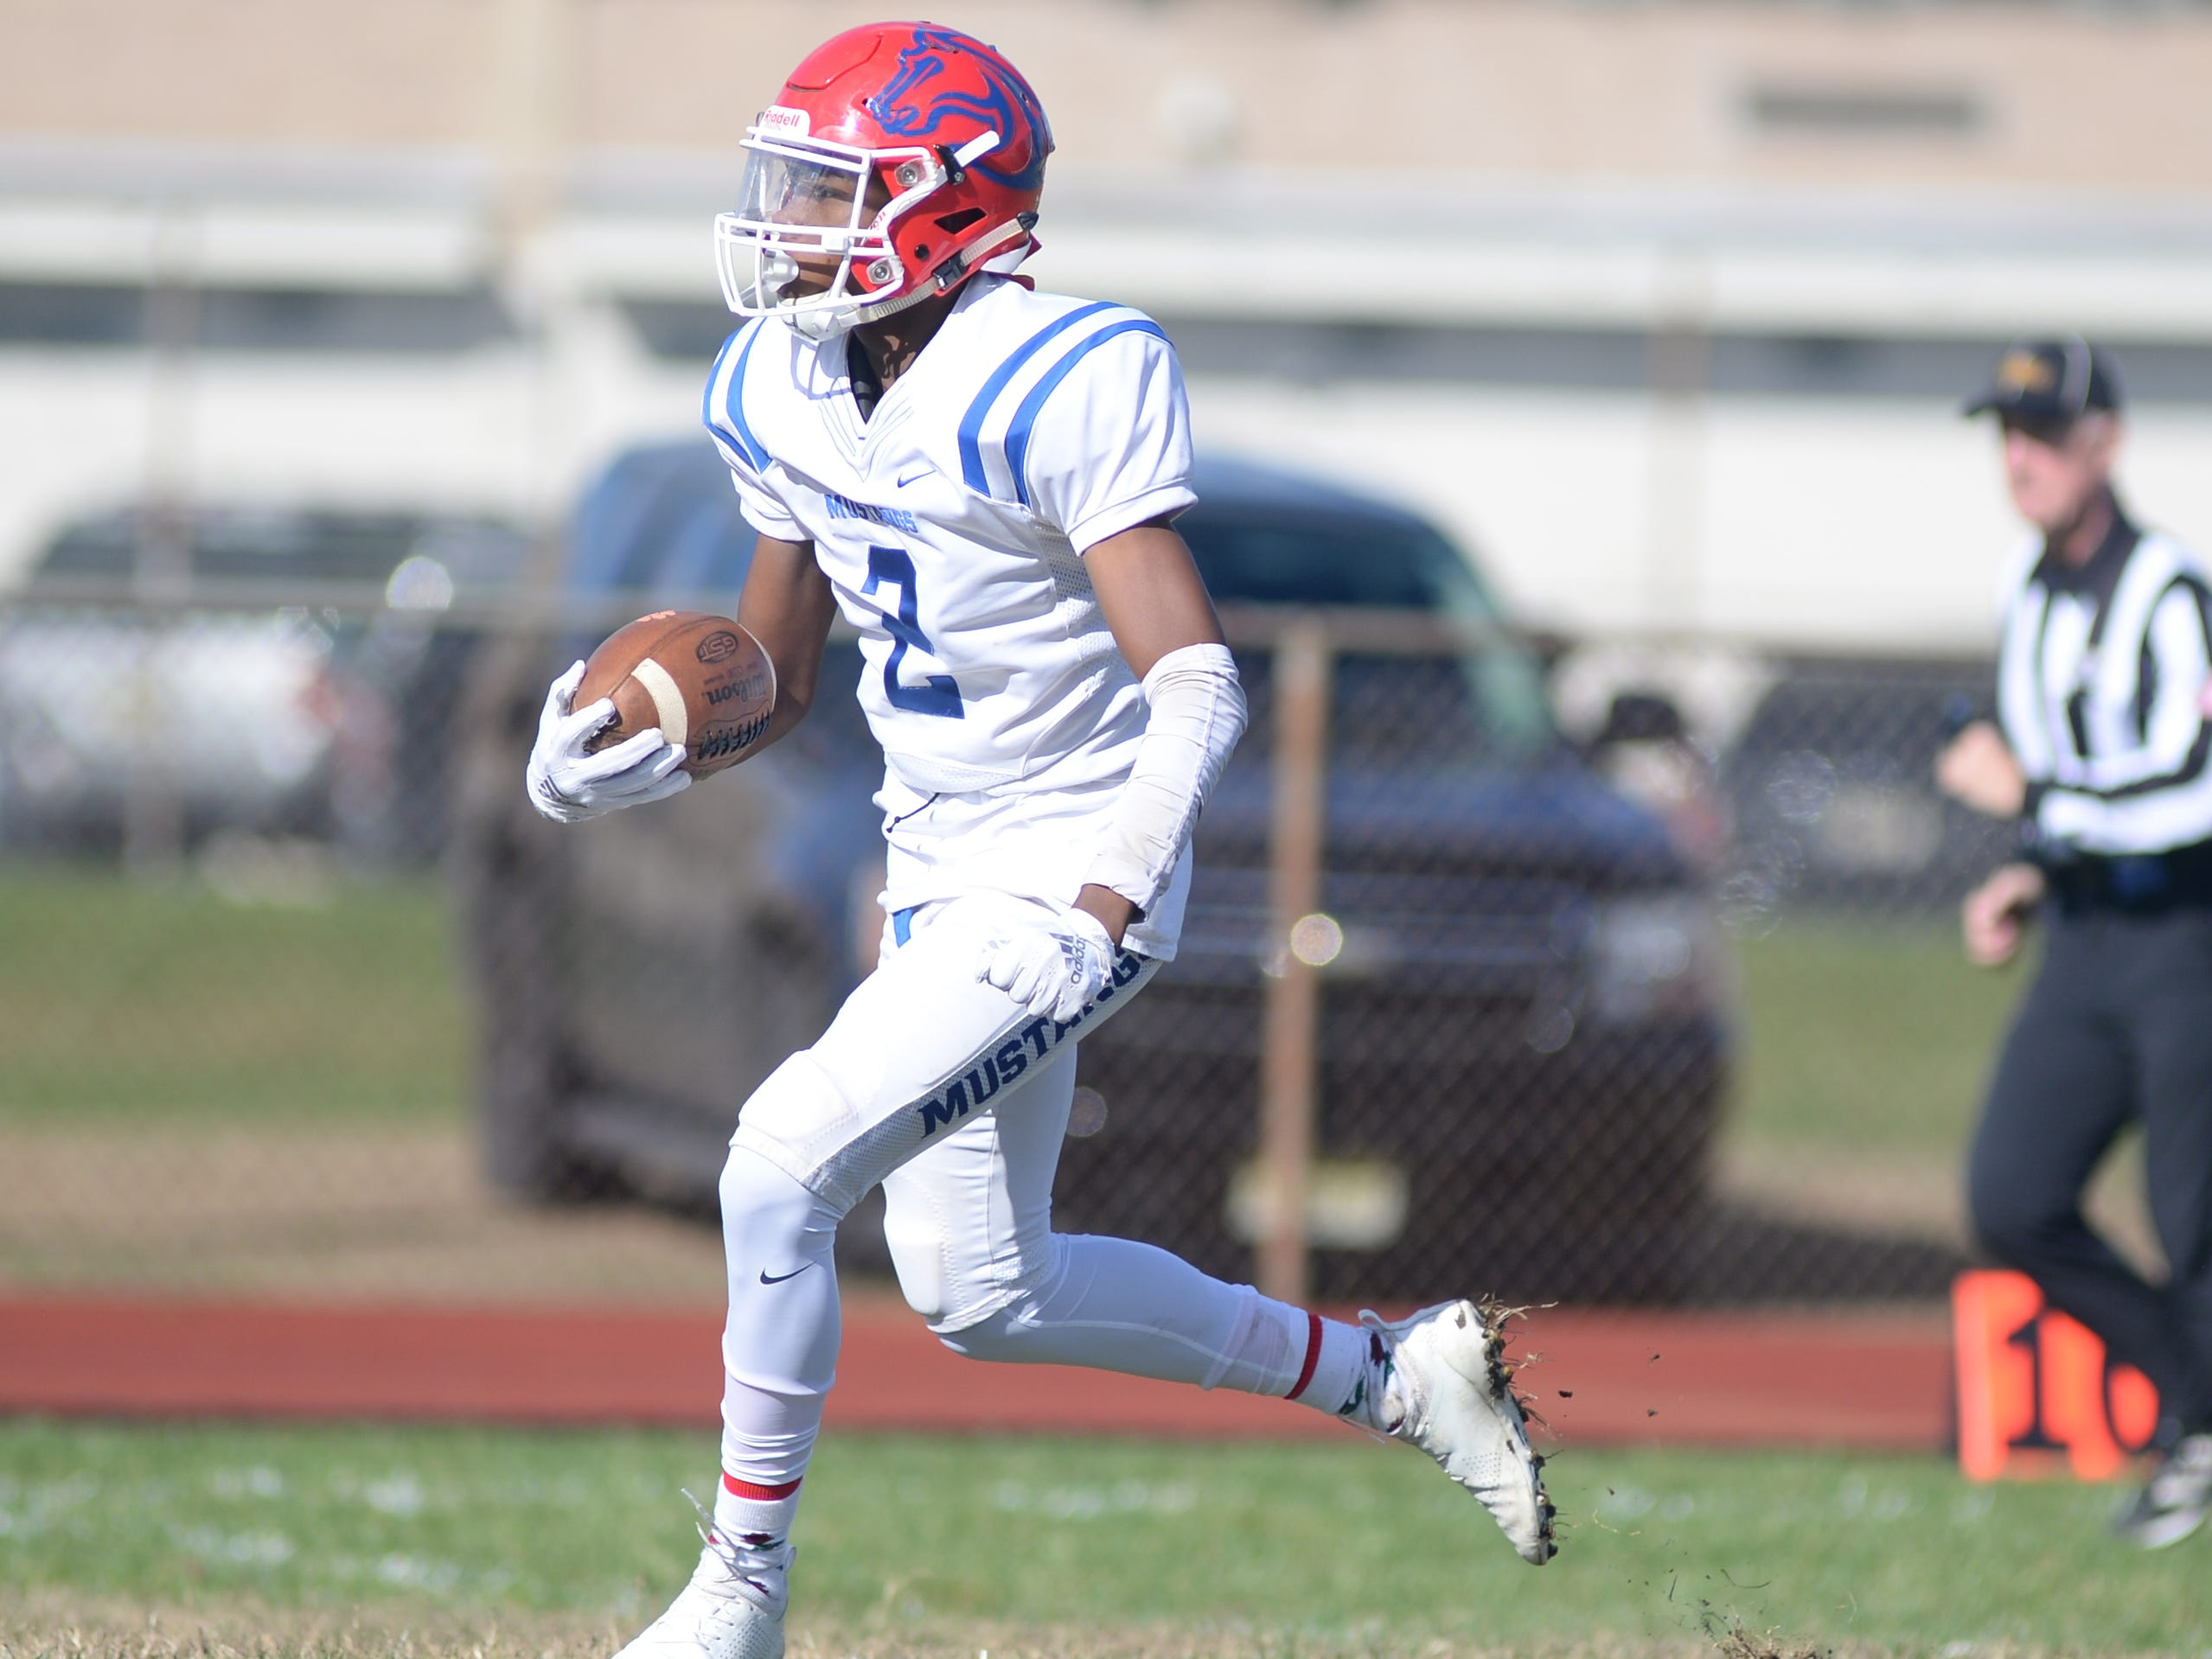 Triton's Shawn Coleman returns a kick against Woodrow Wilson during Saturday's South Jersey Group 3 first round game at Woodrow Wilson High School, Nov. 3, 2018.